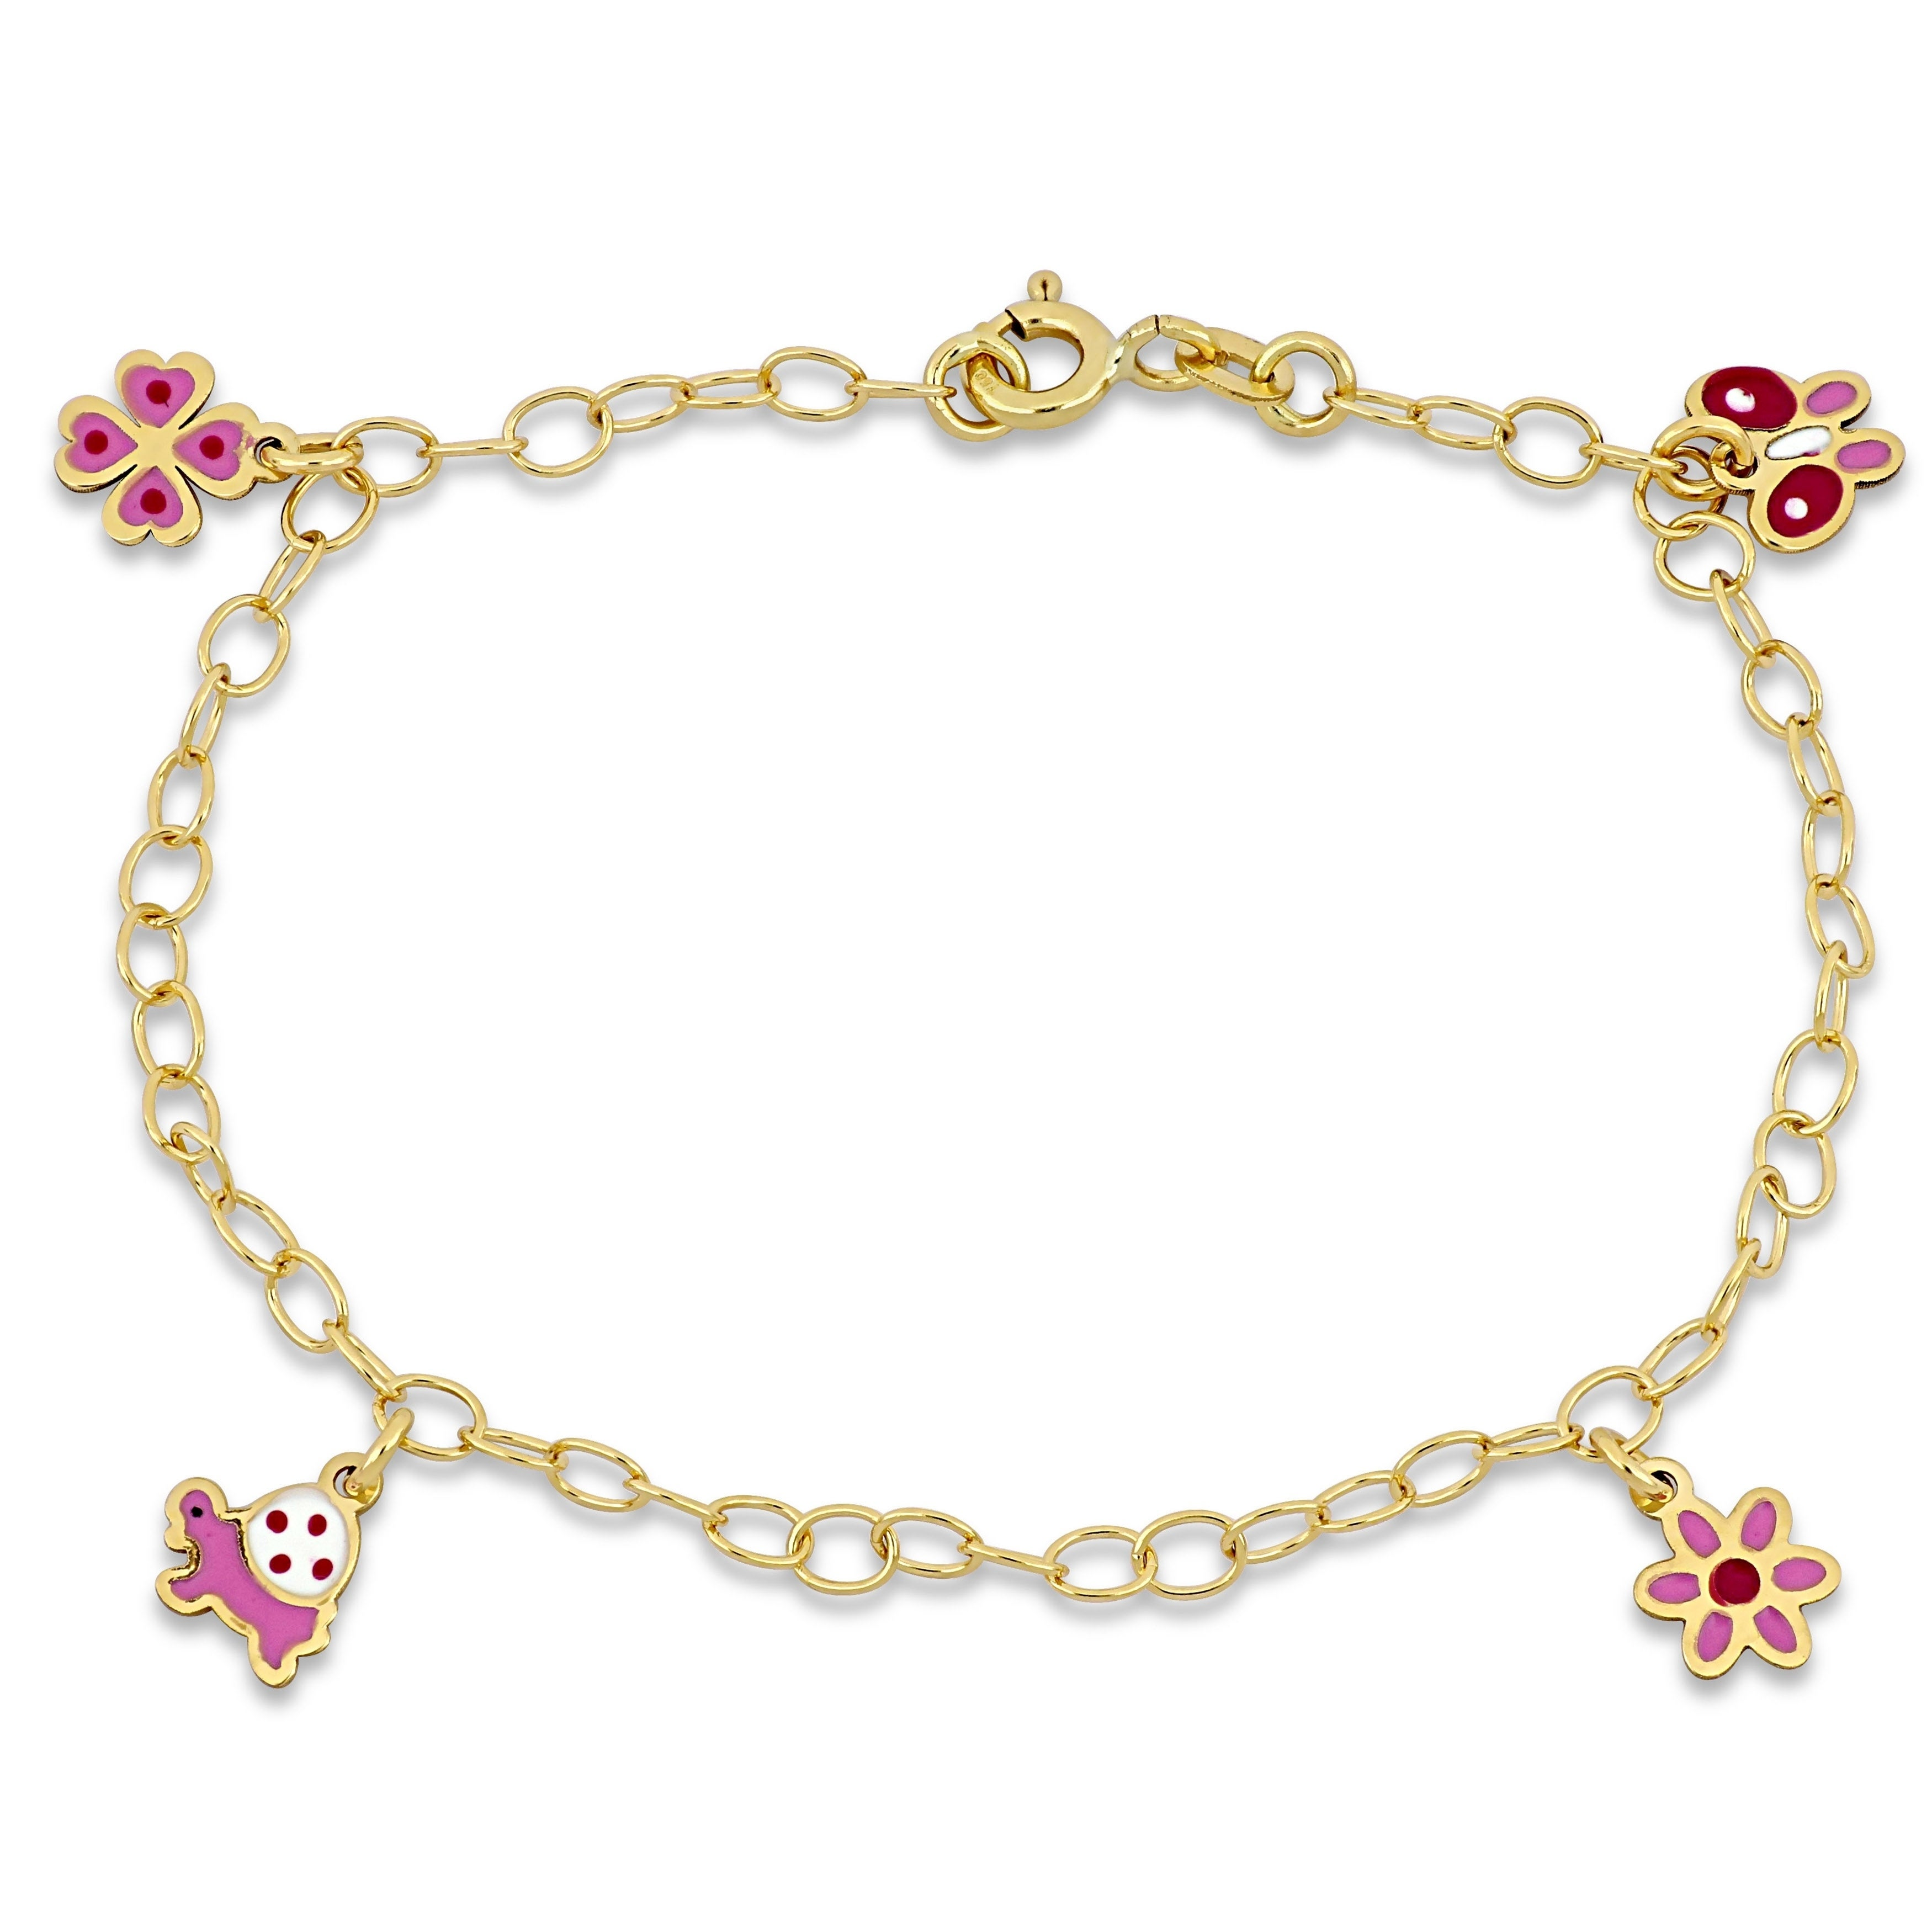 Butterfly and Turtle bracelet 6 inches 18K Yellow Gold Pink and white enamel Flower